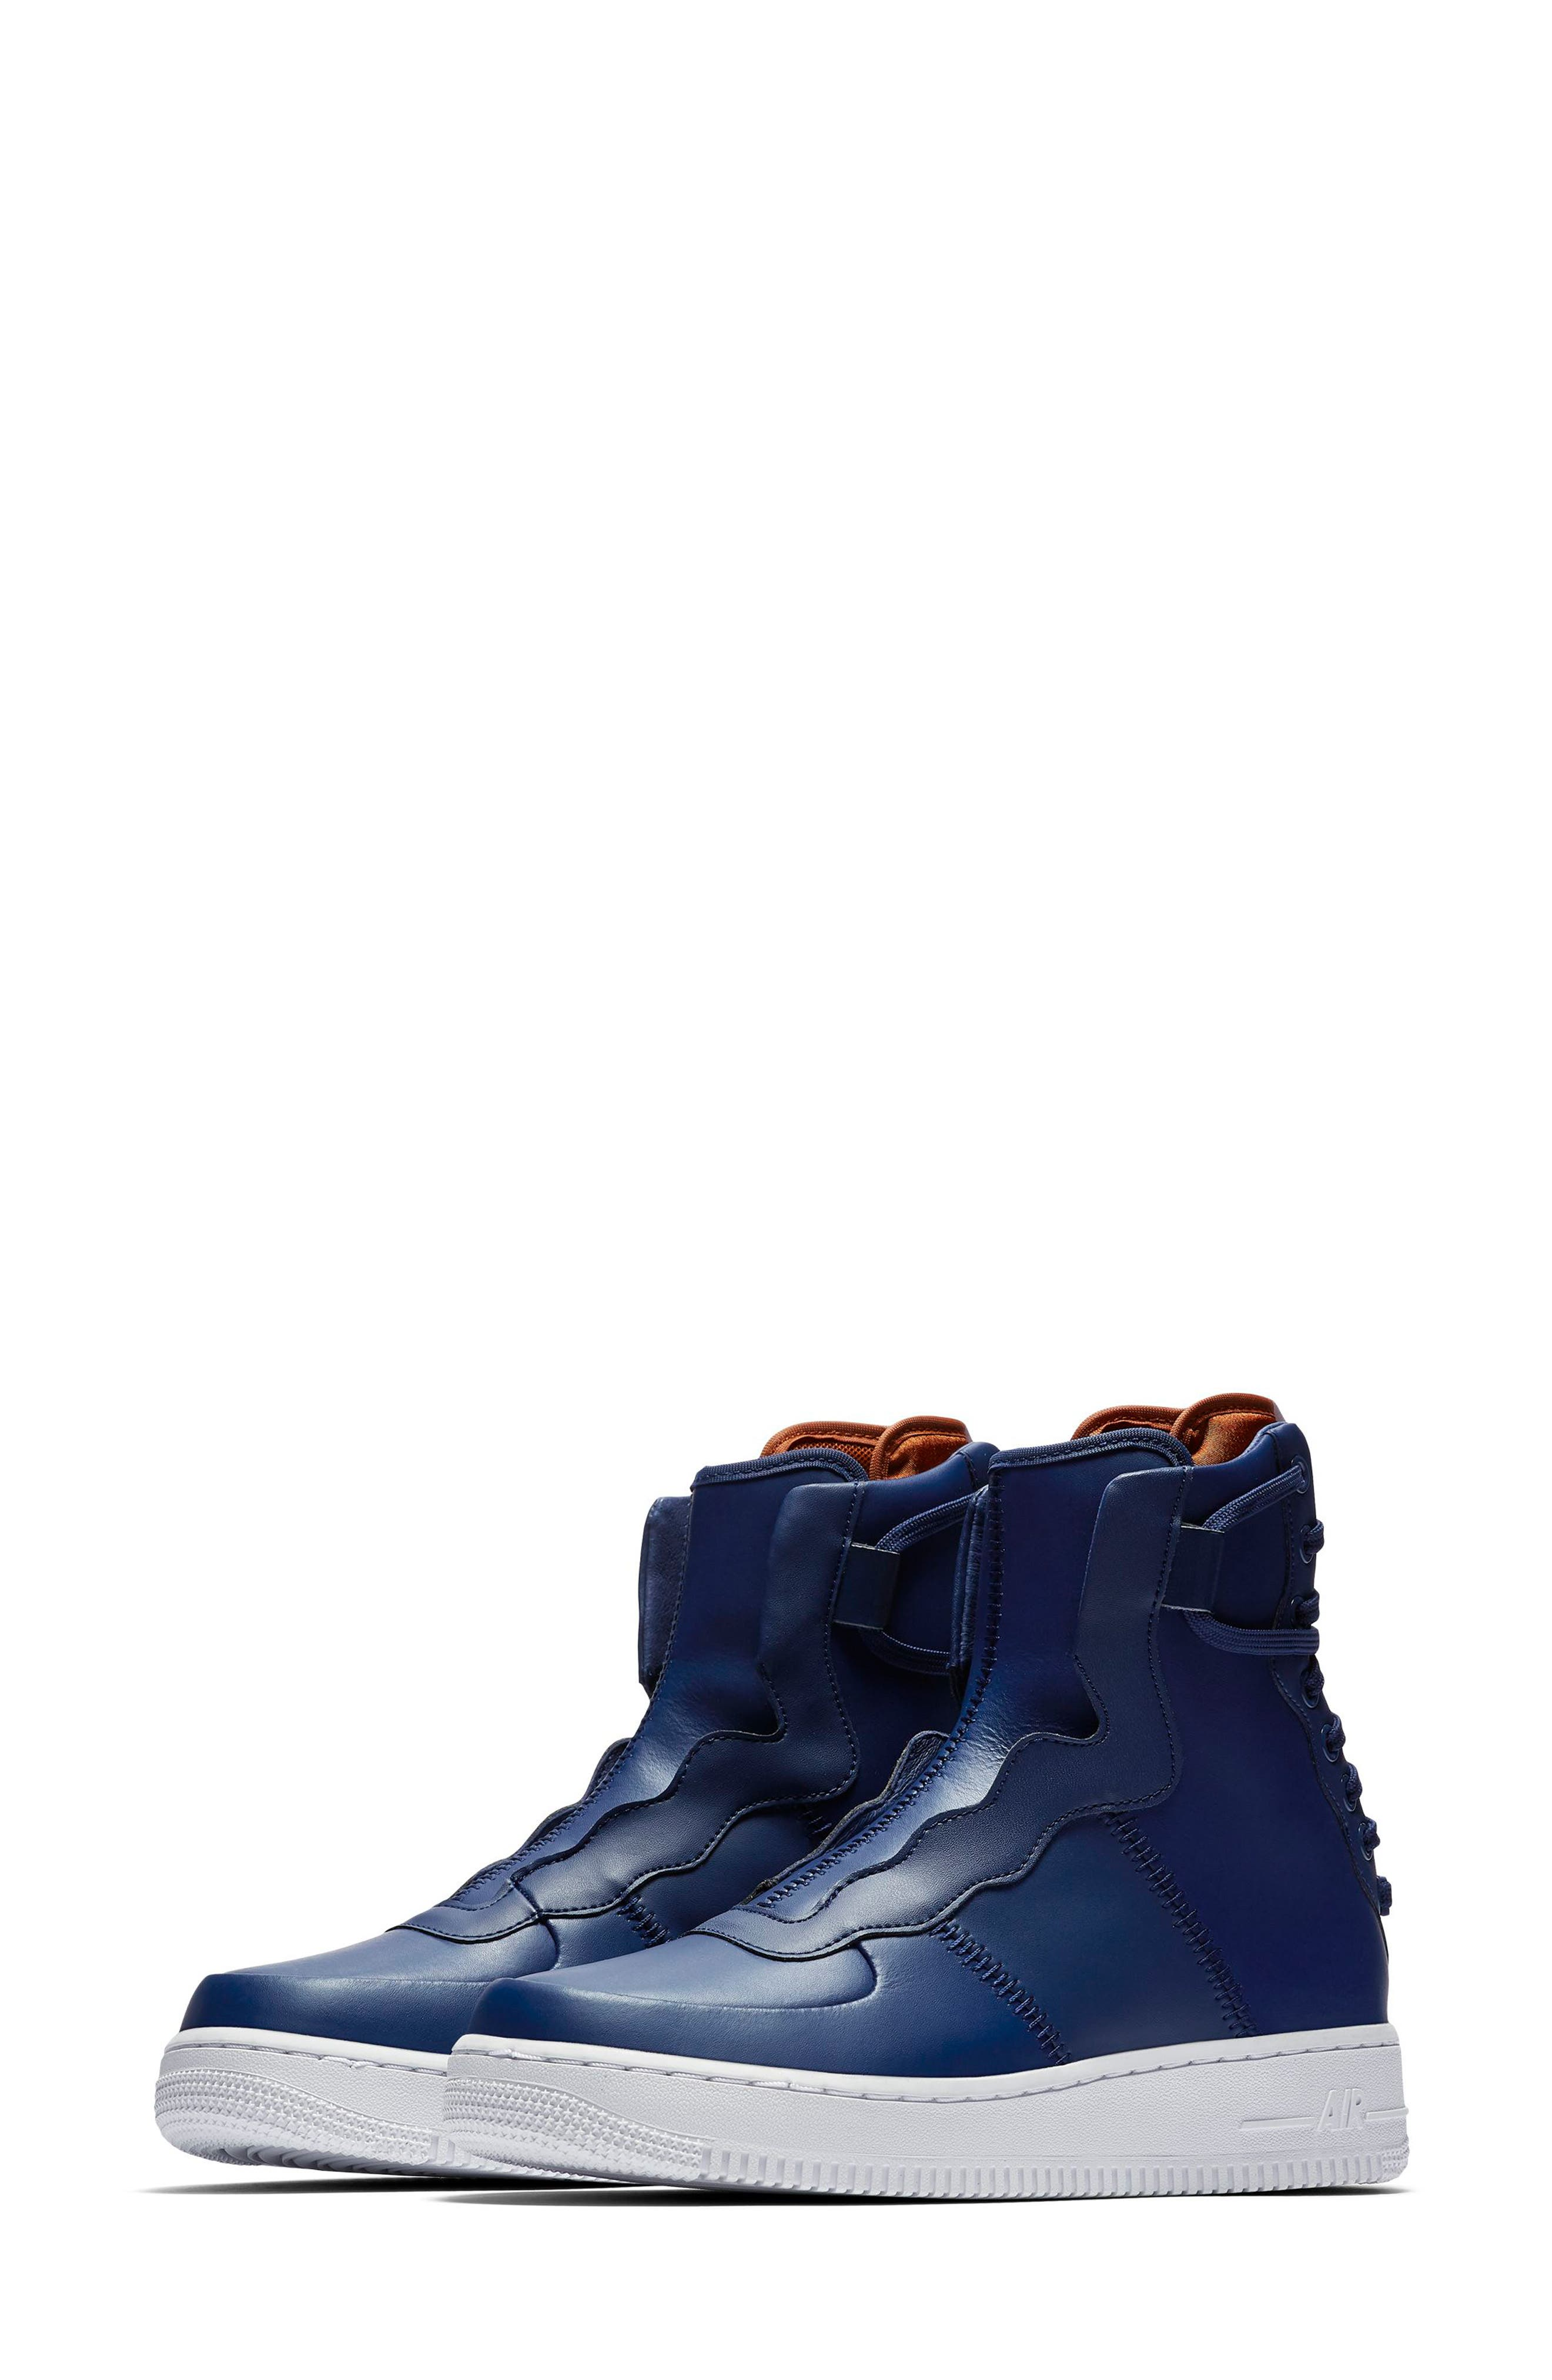 Air Force 1 Rebel XX High Top Sneaker,                             Main thumbnail 1, color,                             BLUE VOID/ RUSSET/ WHITE/ BLUE